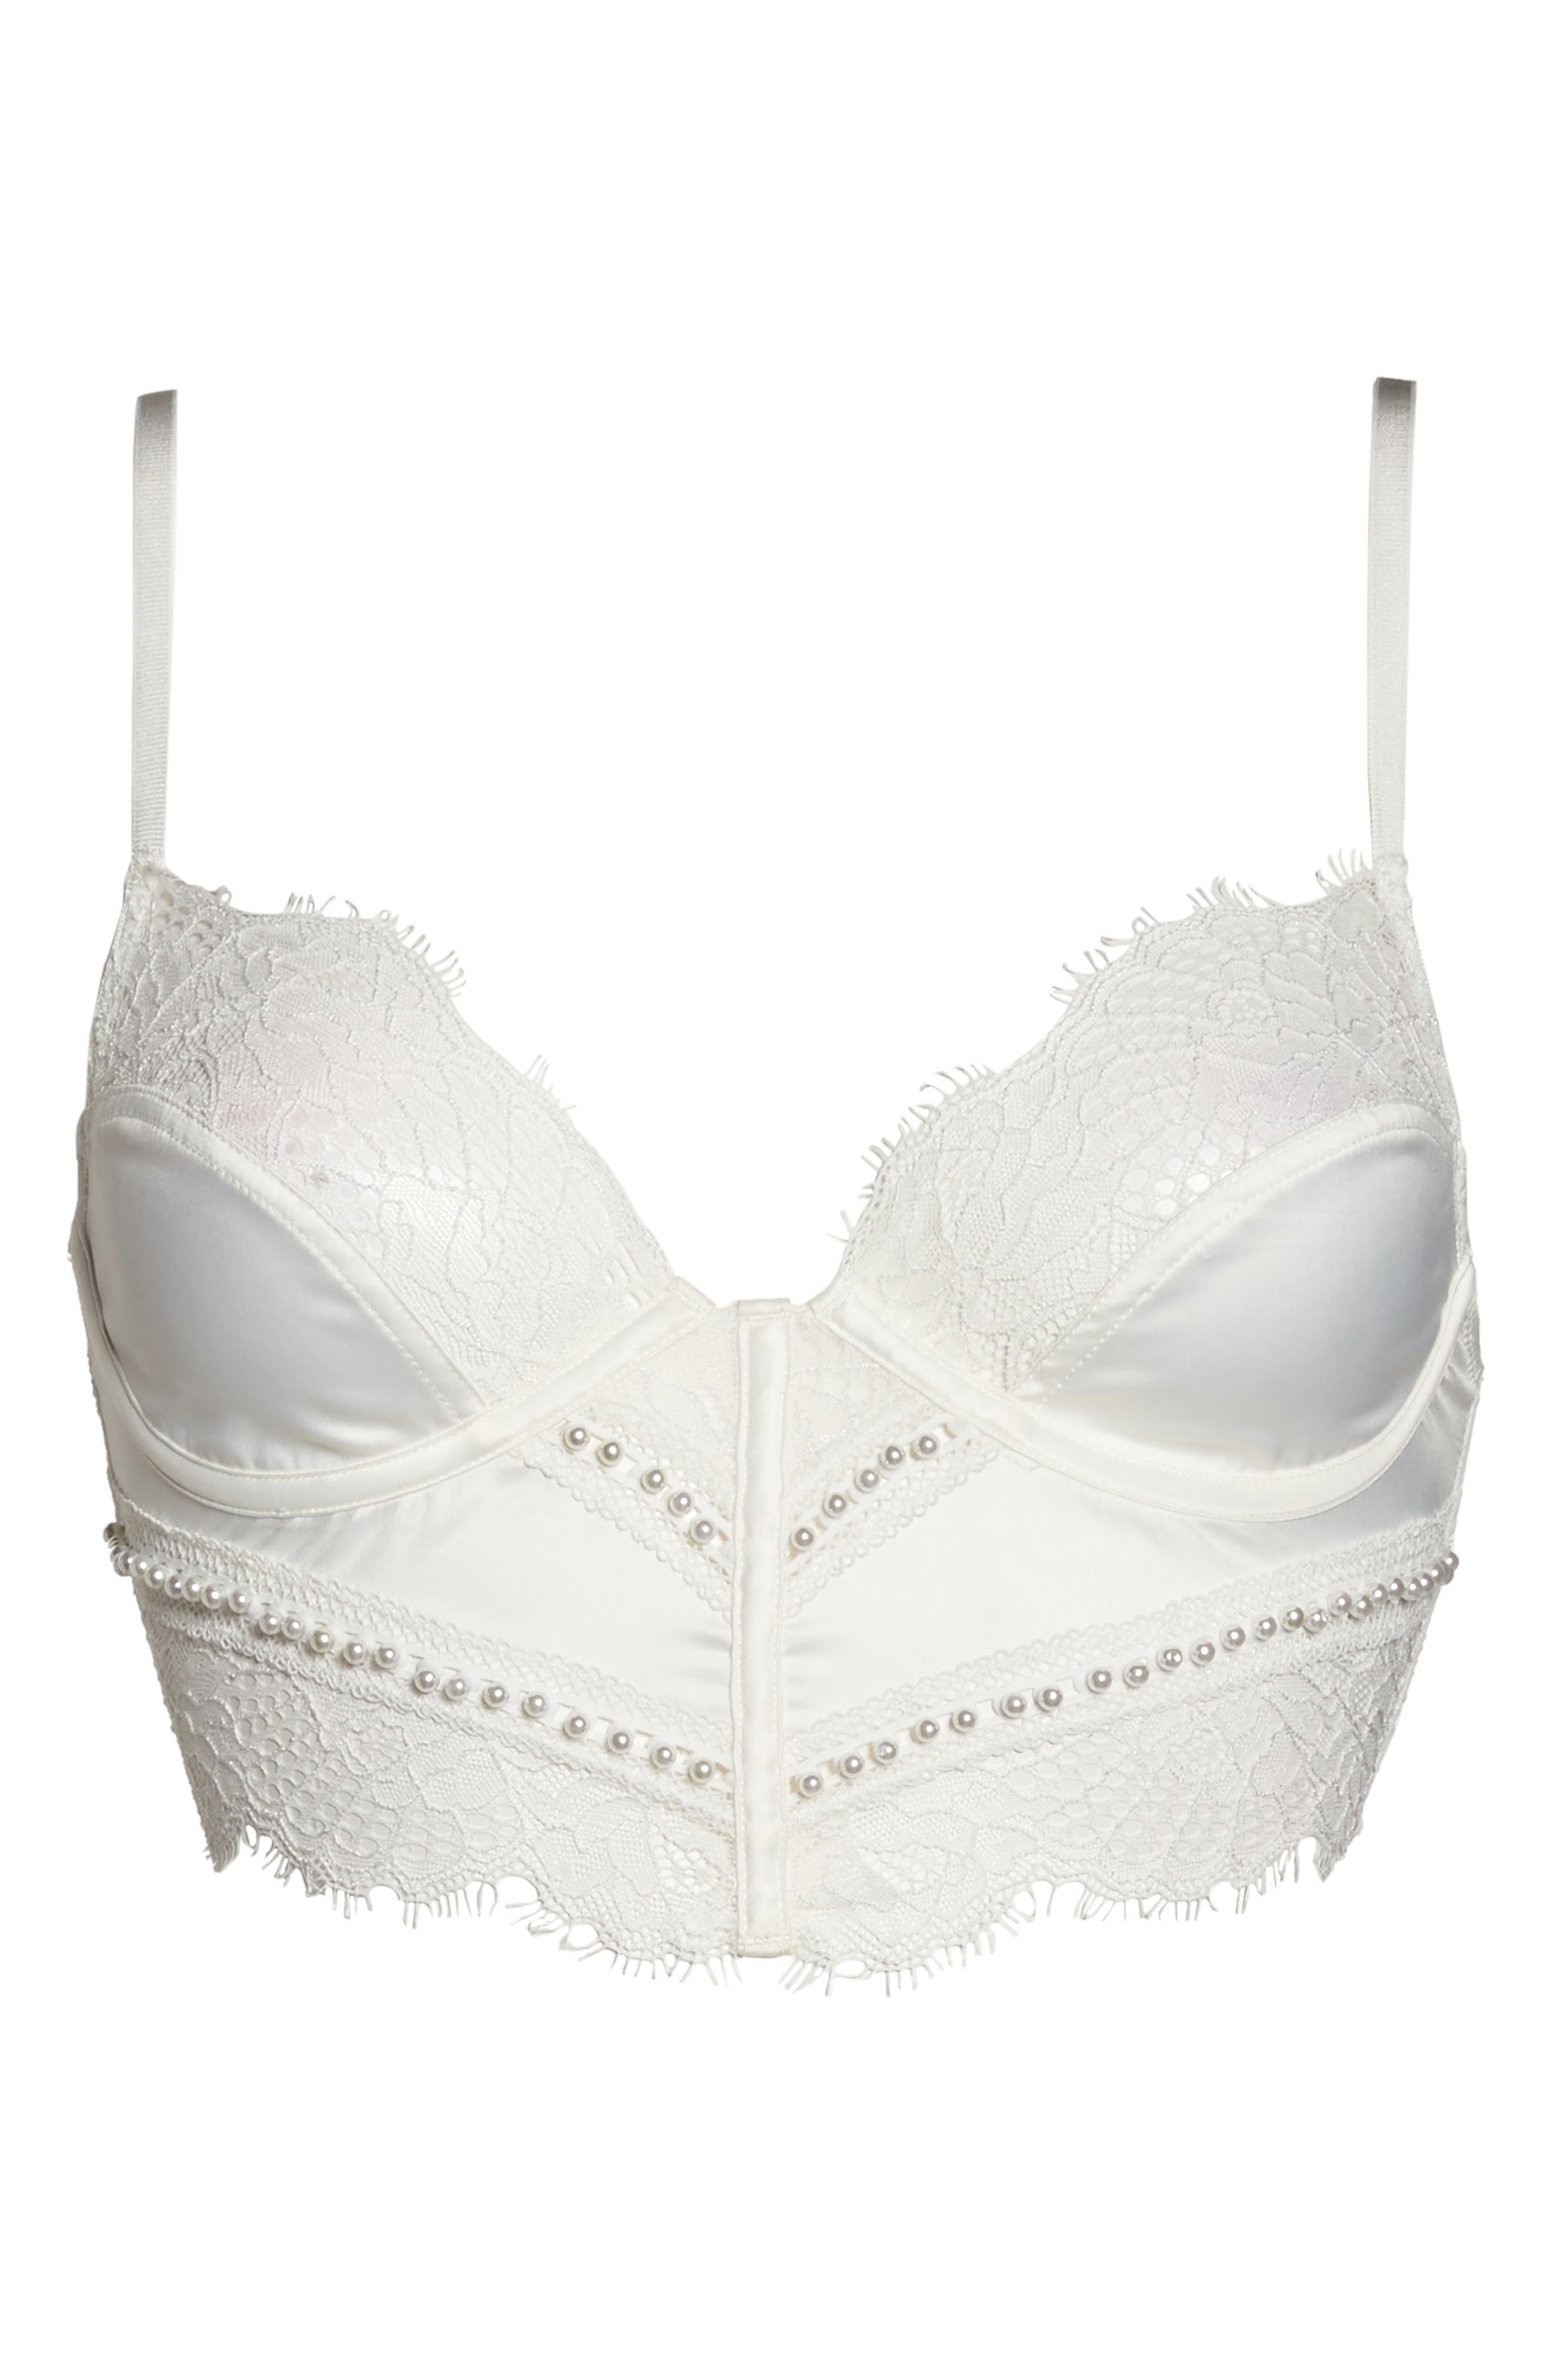 Thistle & Spire Sterling Embellished Underwire Bustier Lace Bra,                             Alternate thumbnail 4, color,                             Ivory